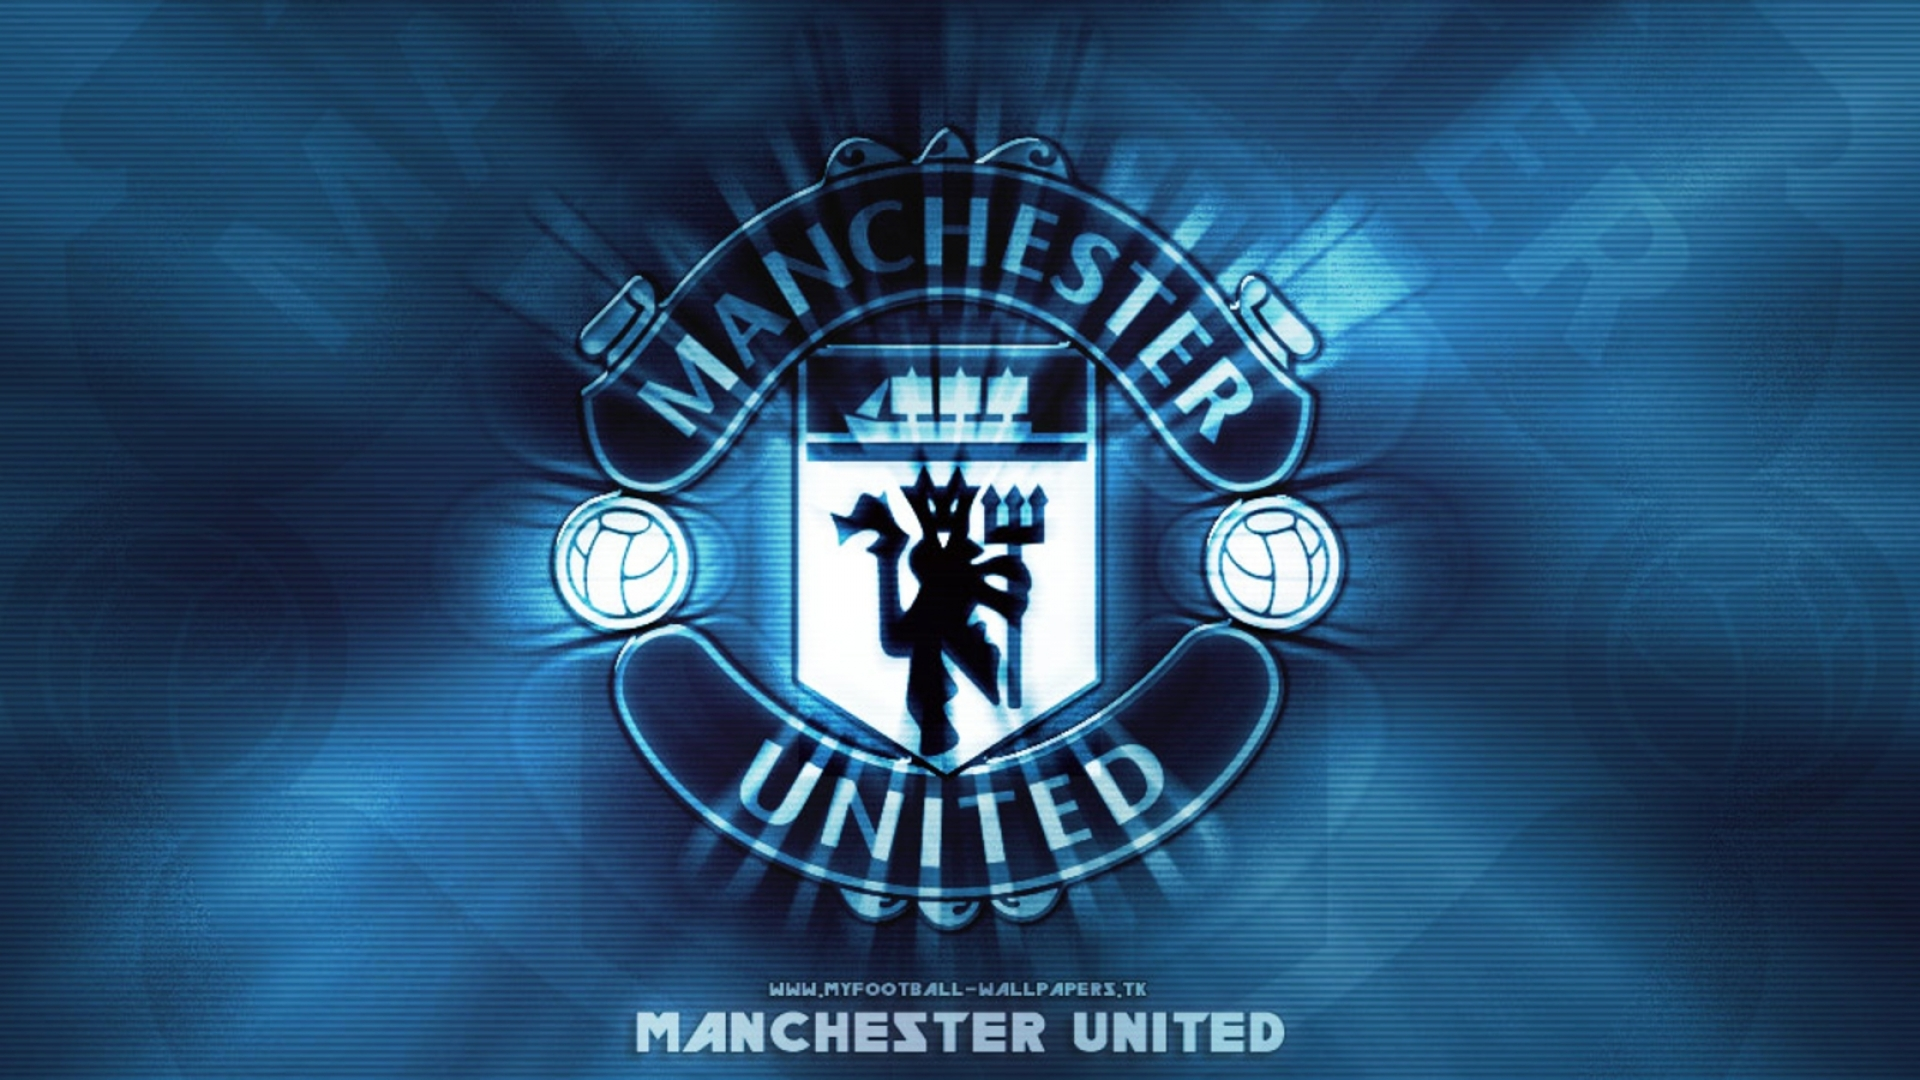 45 Manchester United Wallpapers 1920x1080 On Wallpapersafari